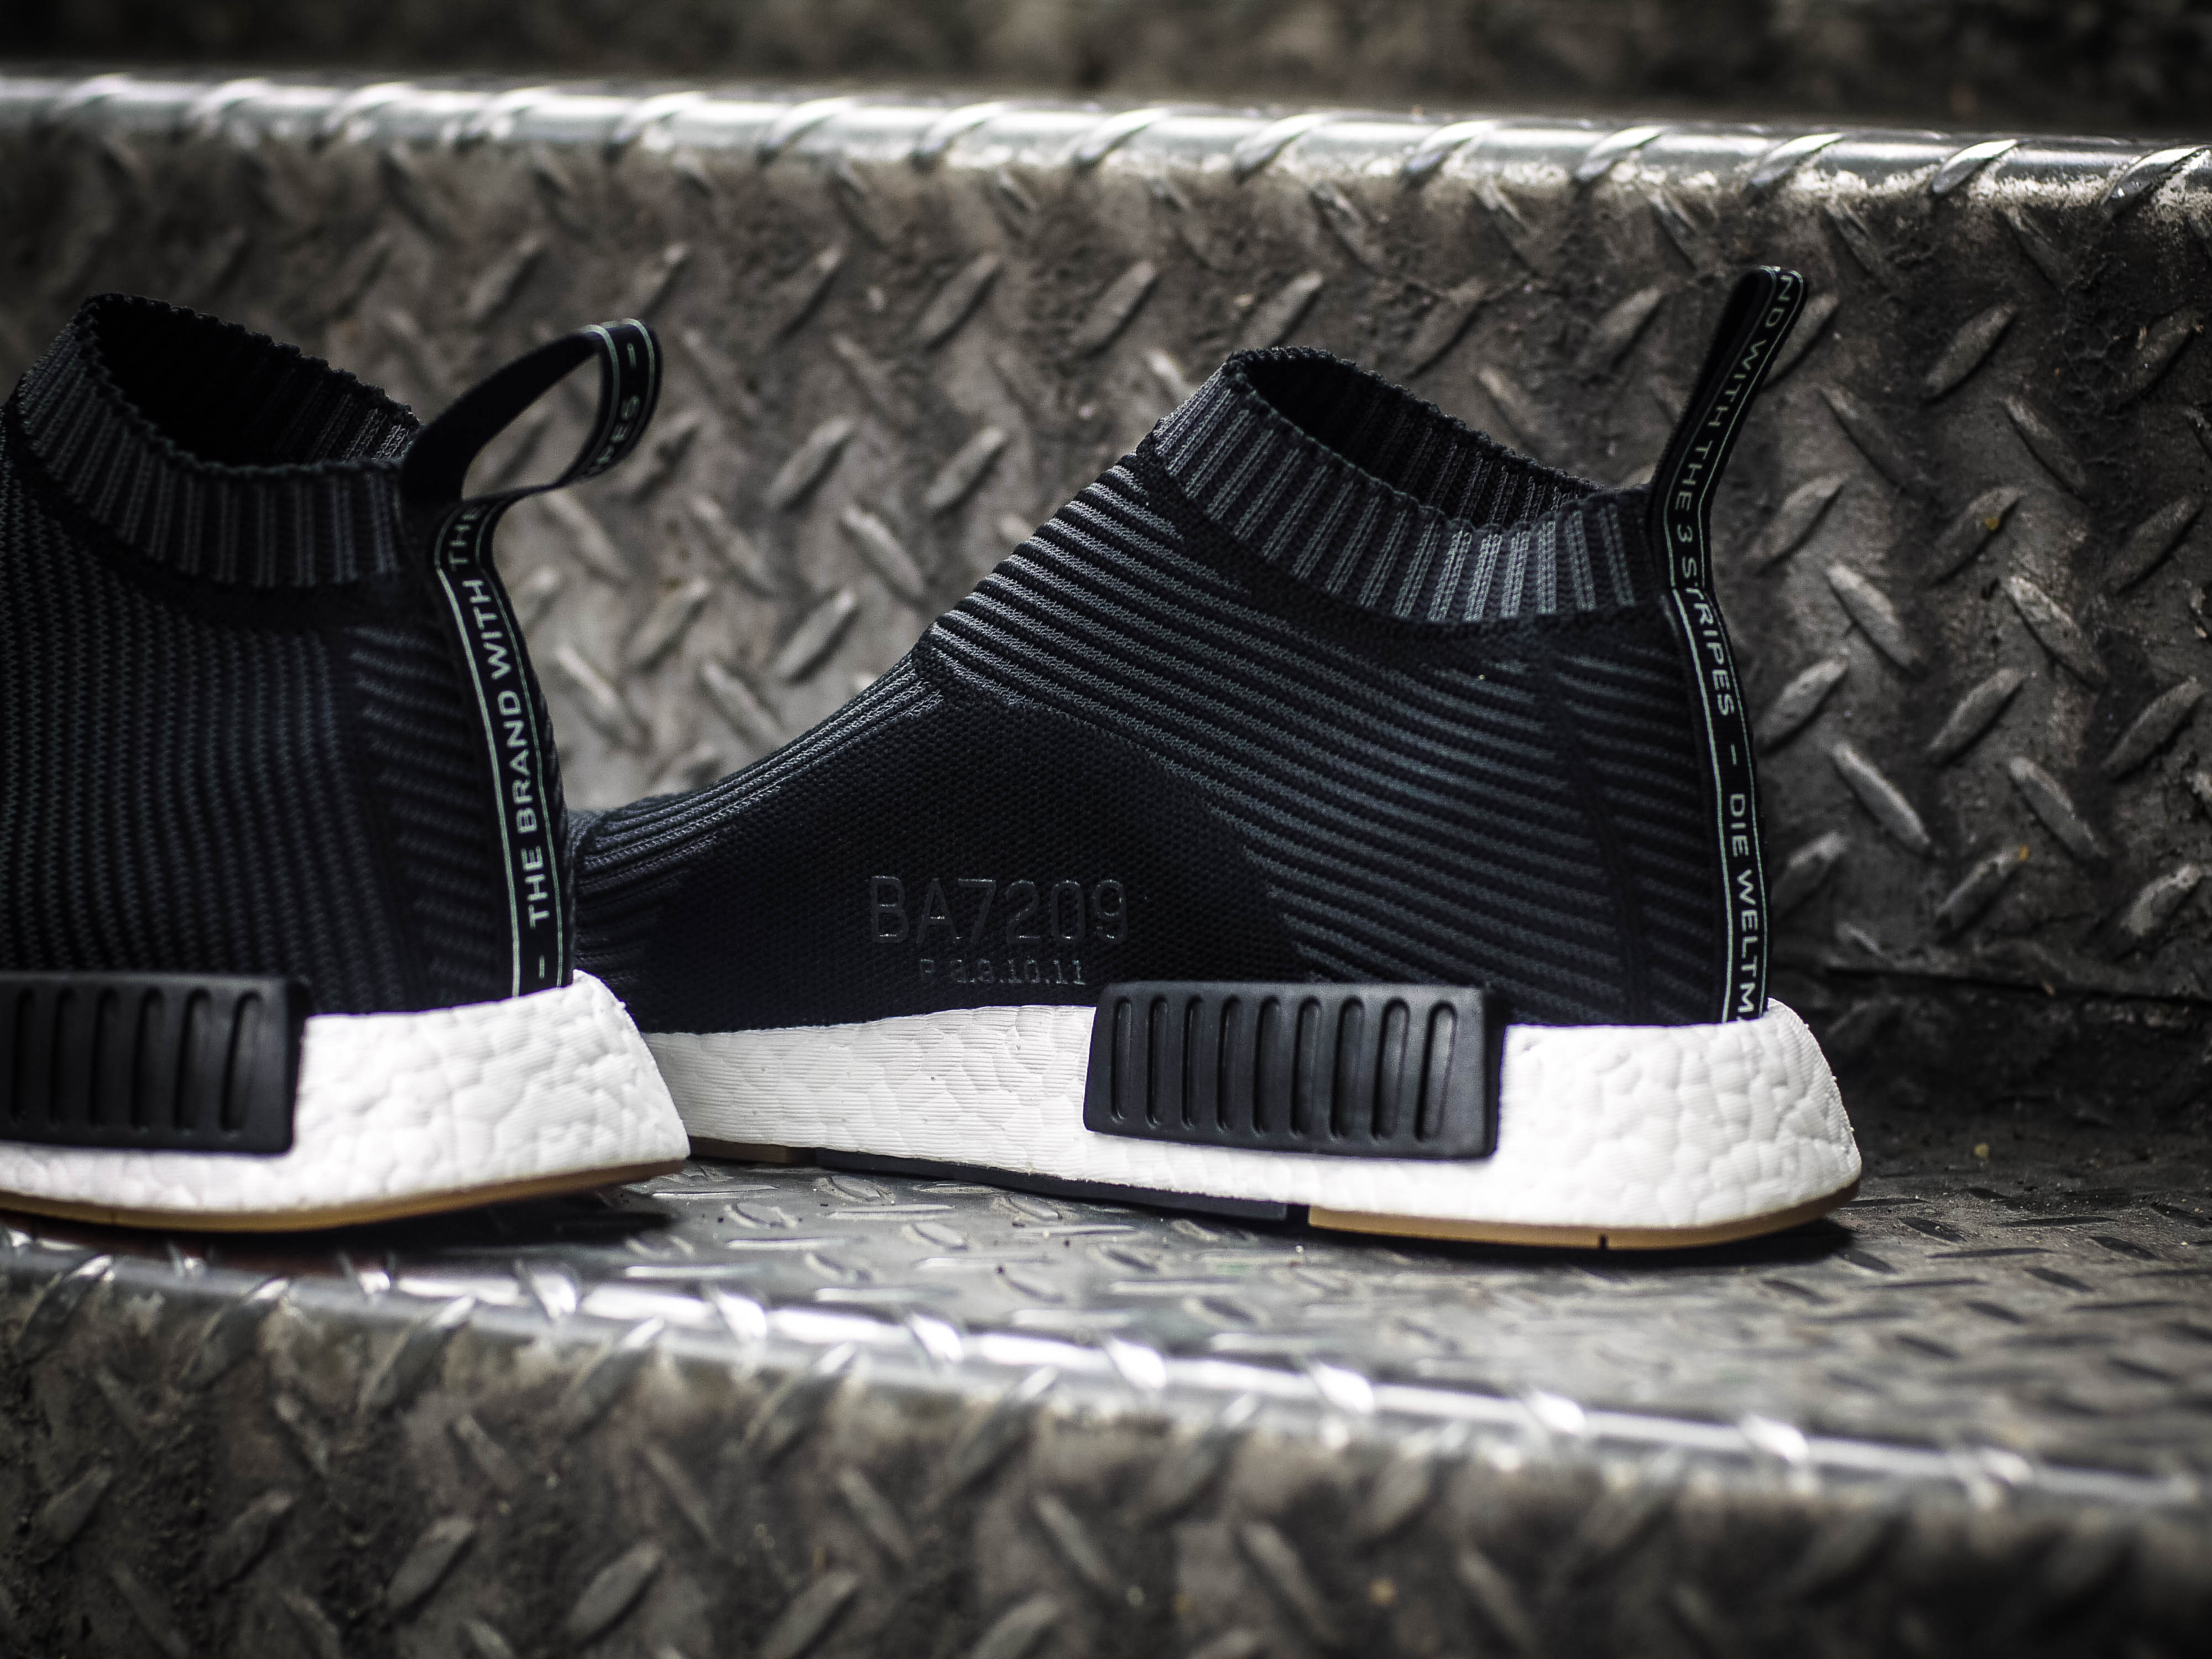 ADIDAS NMD PRIMEKNIT CITY SOCK BLACK SIZE 8.5 10.5 CS1